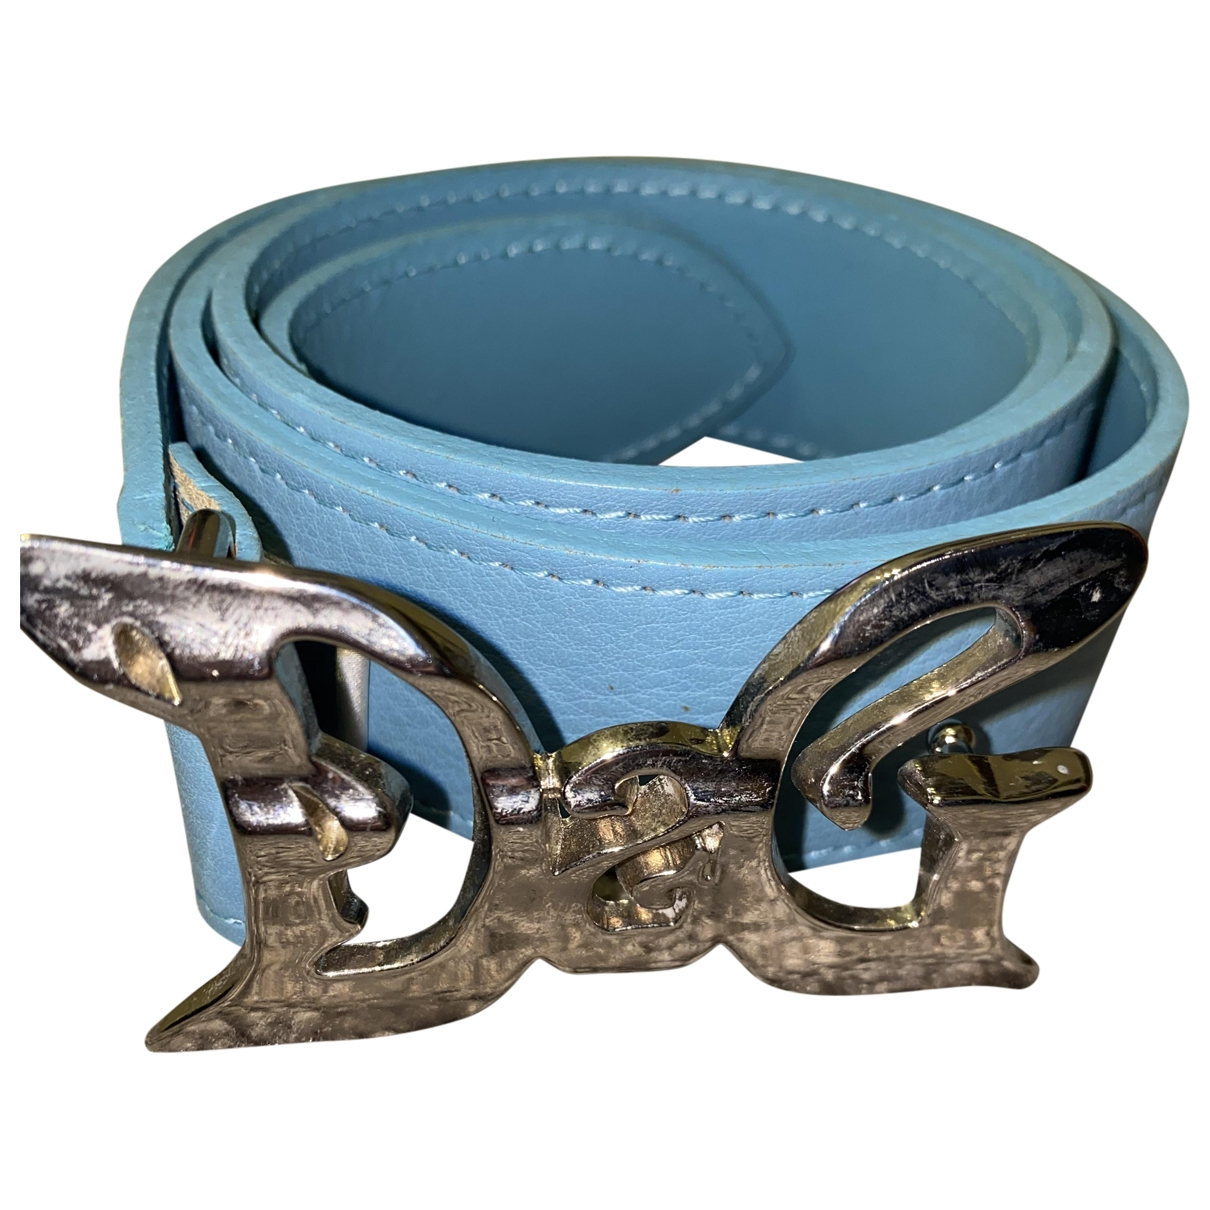 Dolce & Gabbana \N Blue Leather belt for Women 37 Inches